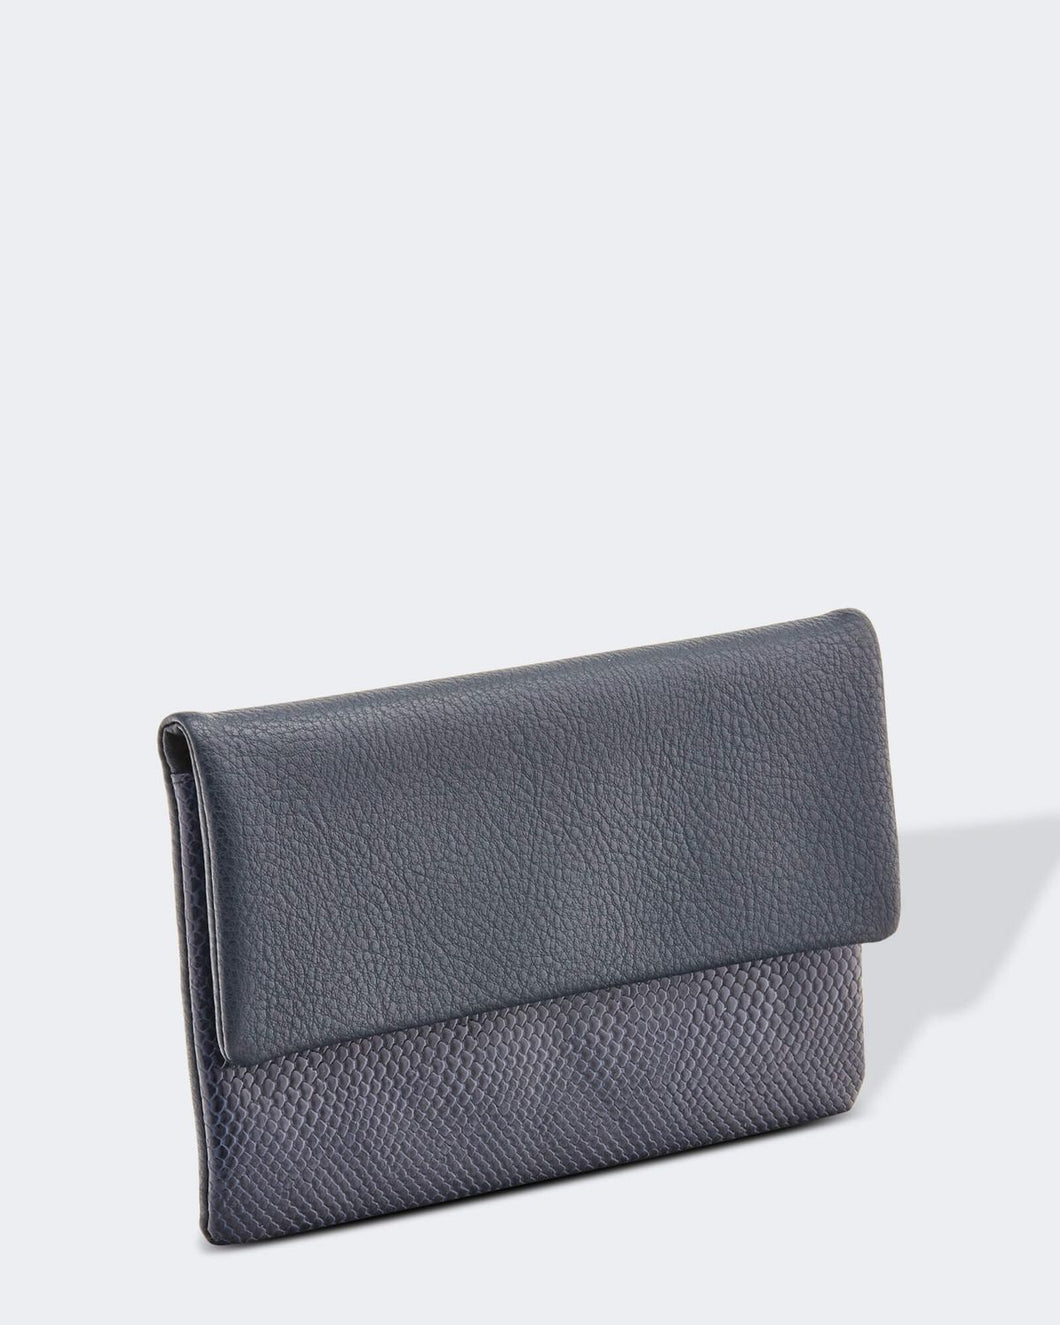 Louenhide Ziggy Snake Navy Wallet Purse - Global Free Style